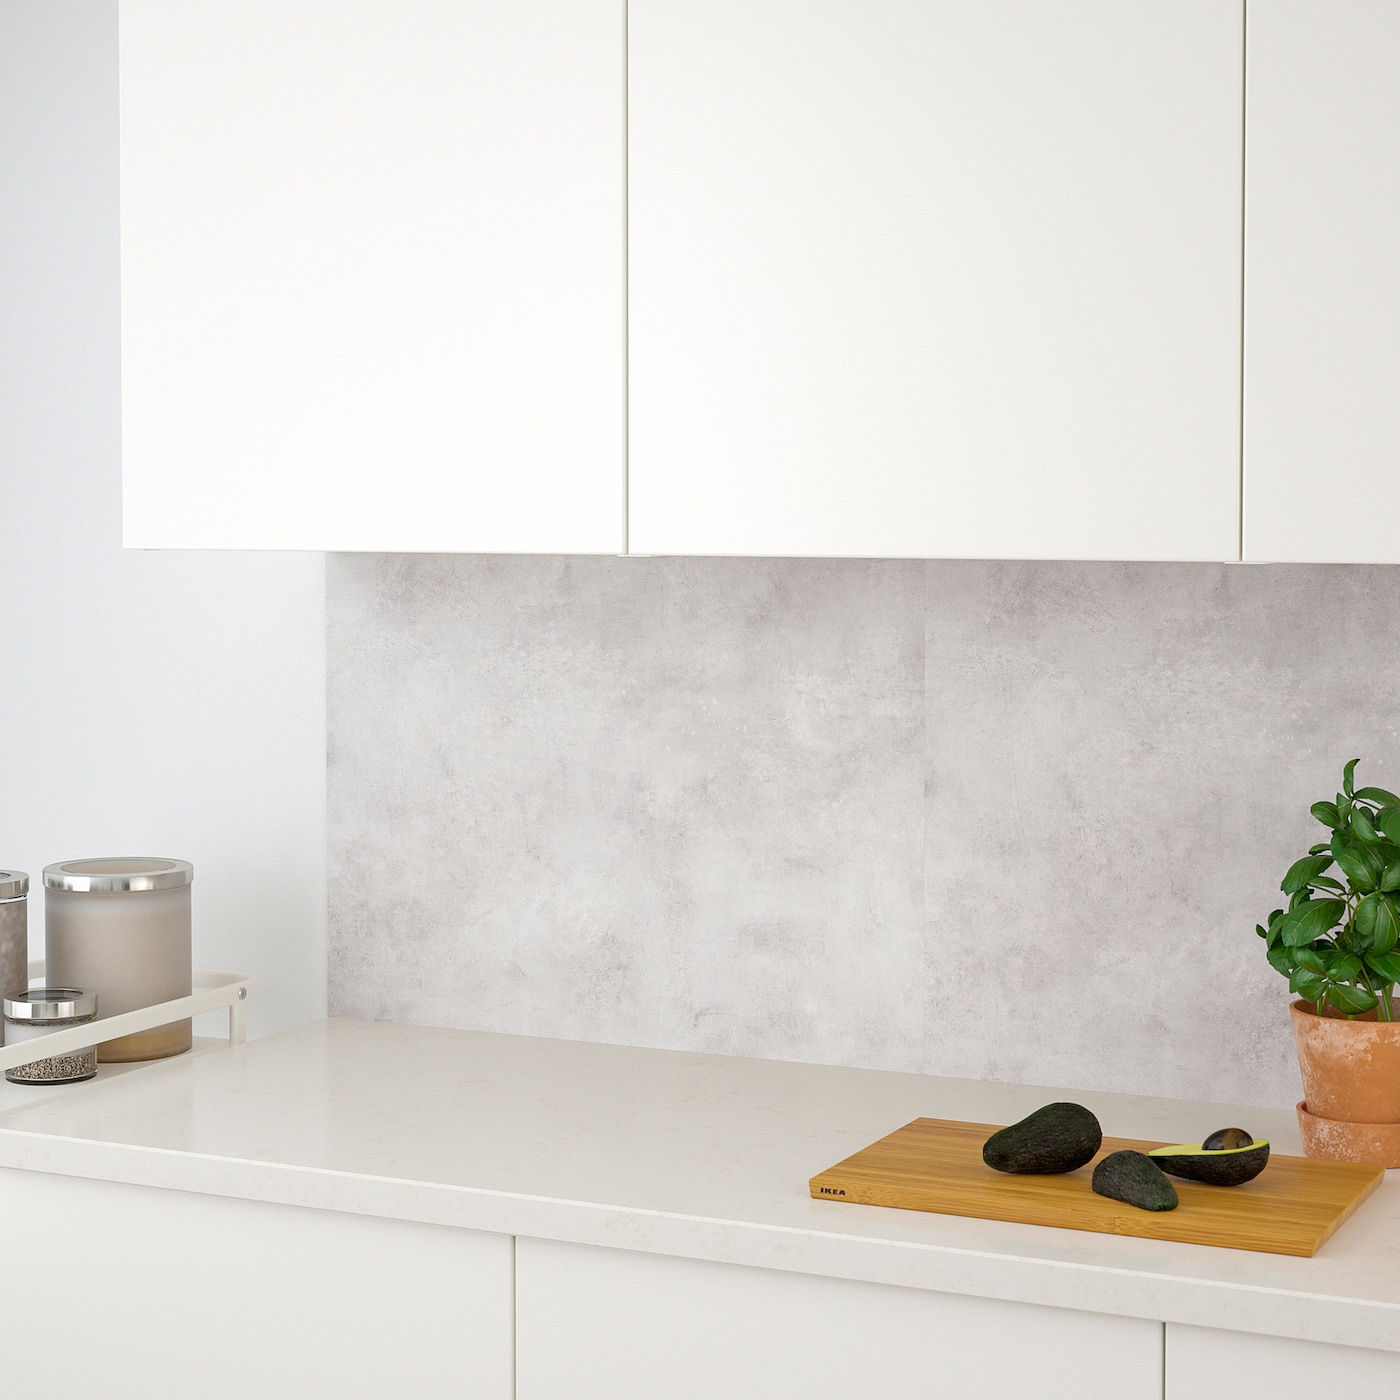 "LYSEKIL Wall panel - double sided white/light gray concrete effect 12x12 ""  (12x12 cm)"